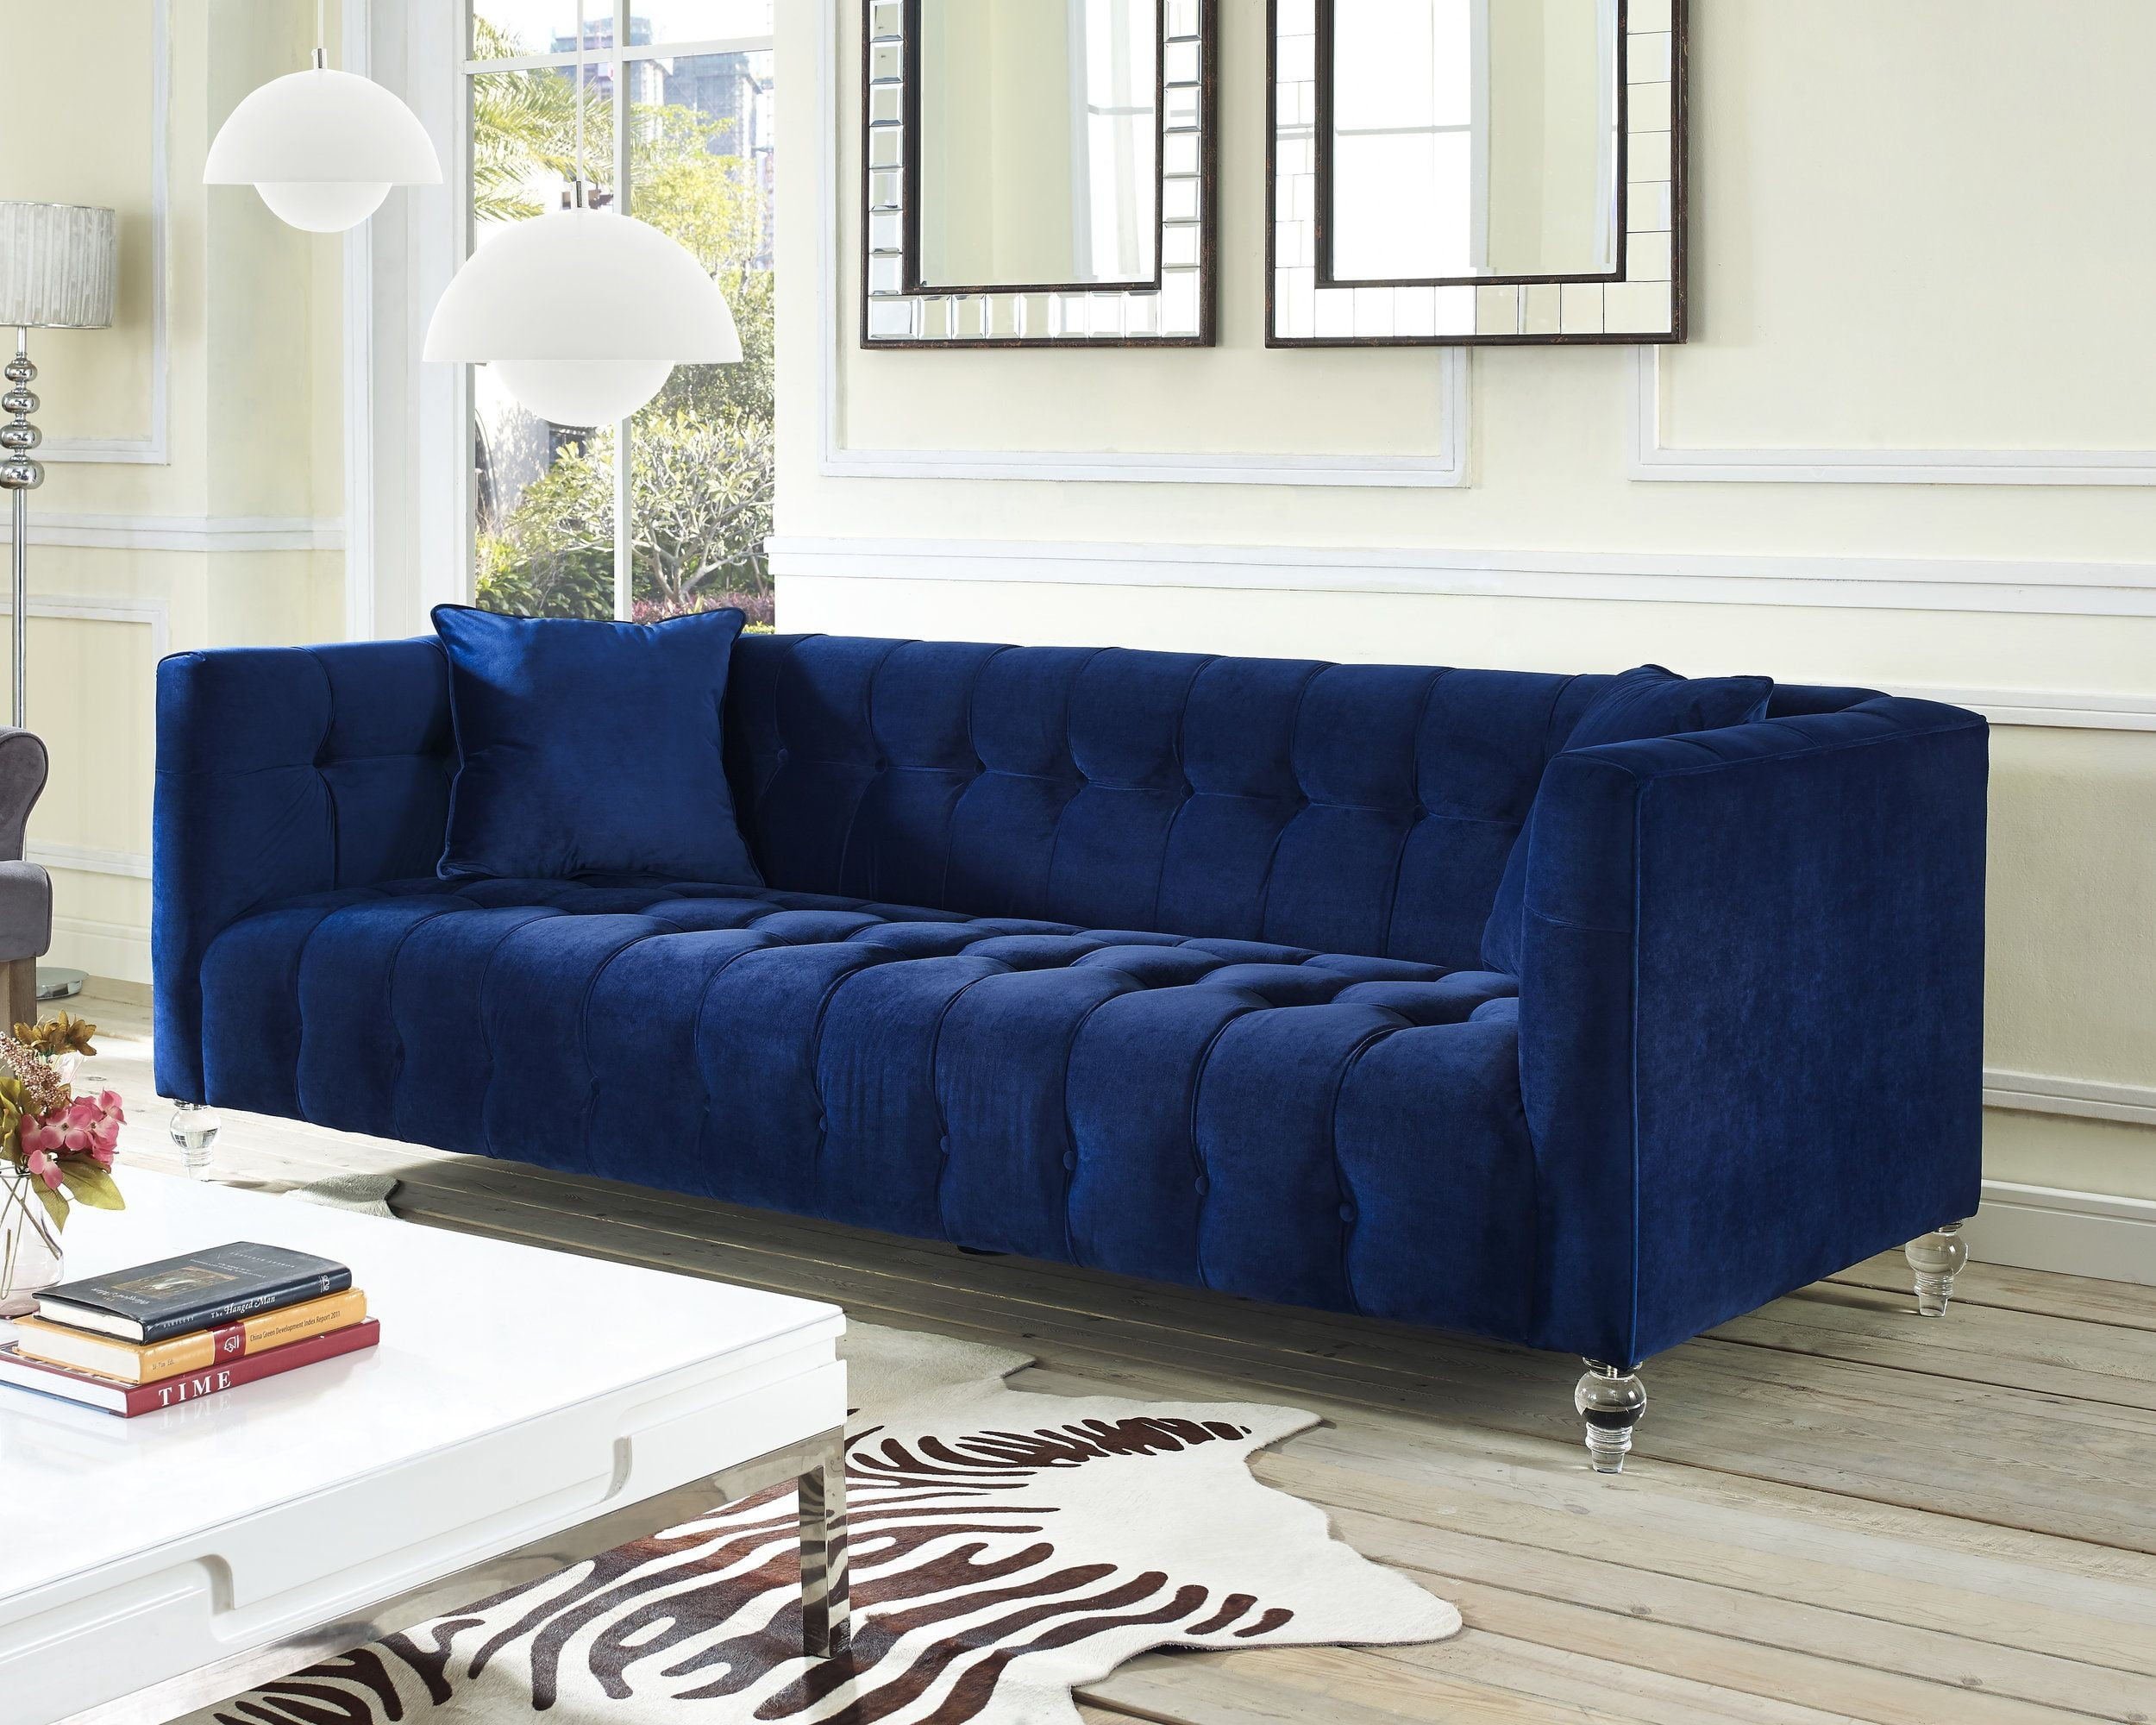 Bea Navy Velvet Sofa From Tov Tov S85 Coleman Furniture